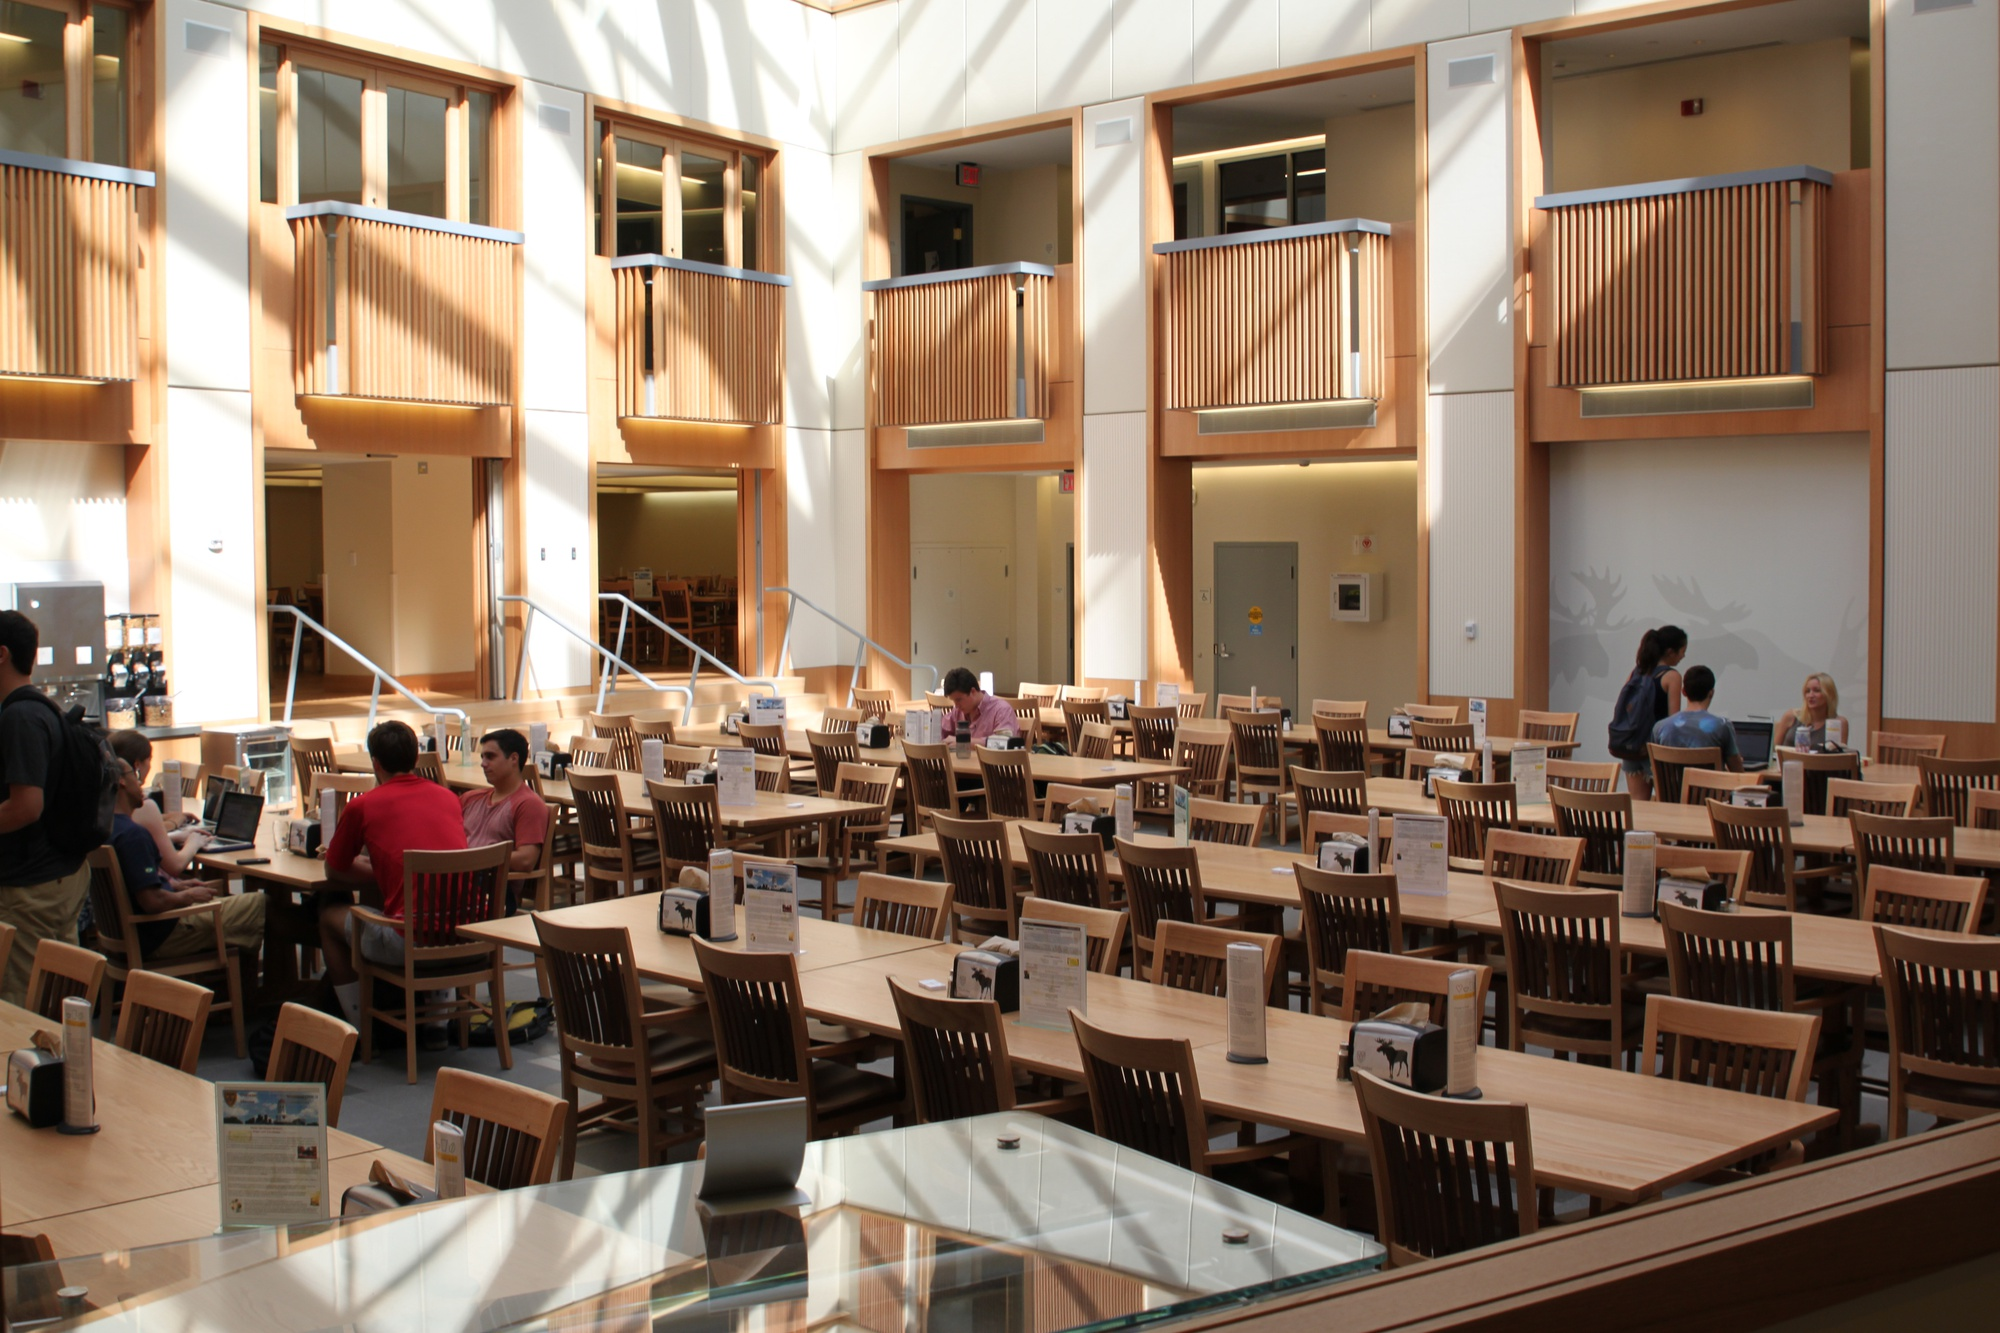 """Residents study in the dining hall at the Inn at Harvard, the """"headquarters"""" of Dunster House while its iconic building is being renovated."""